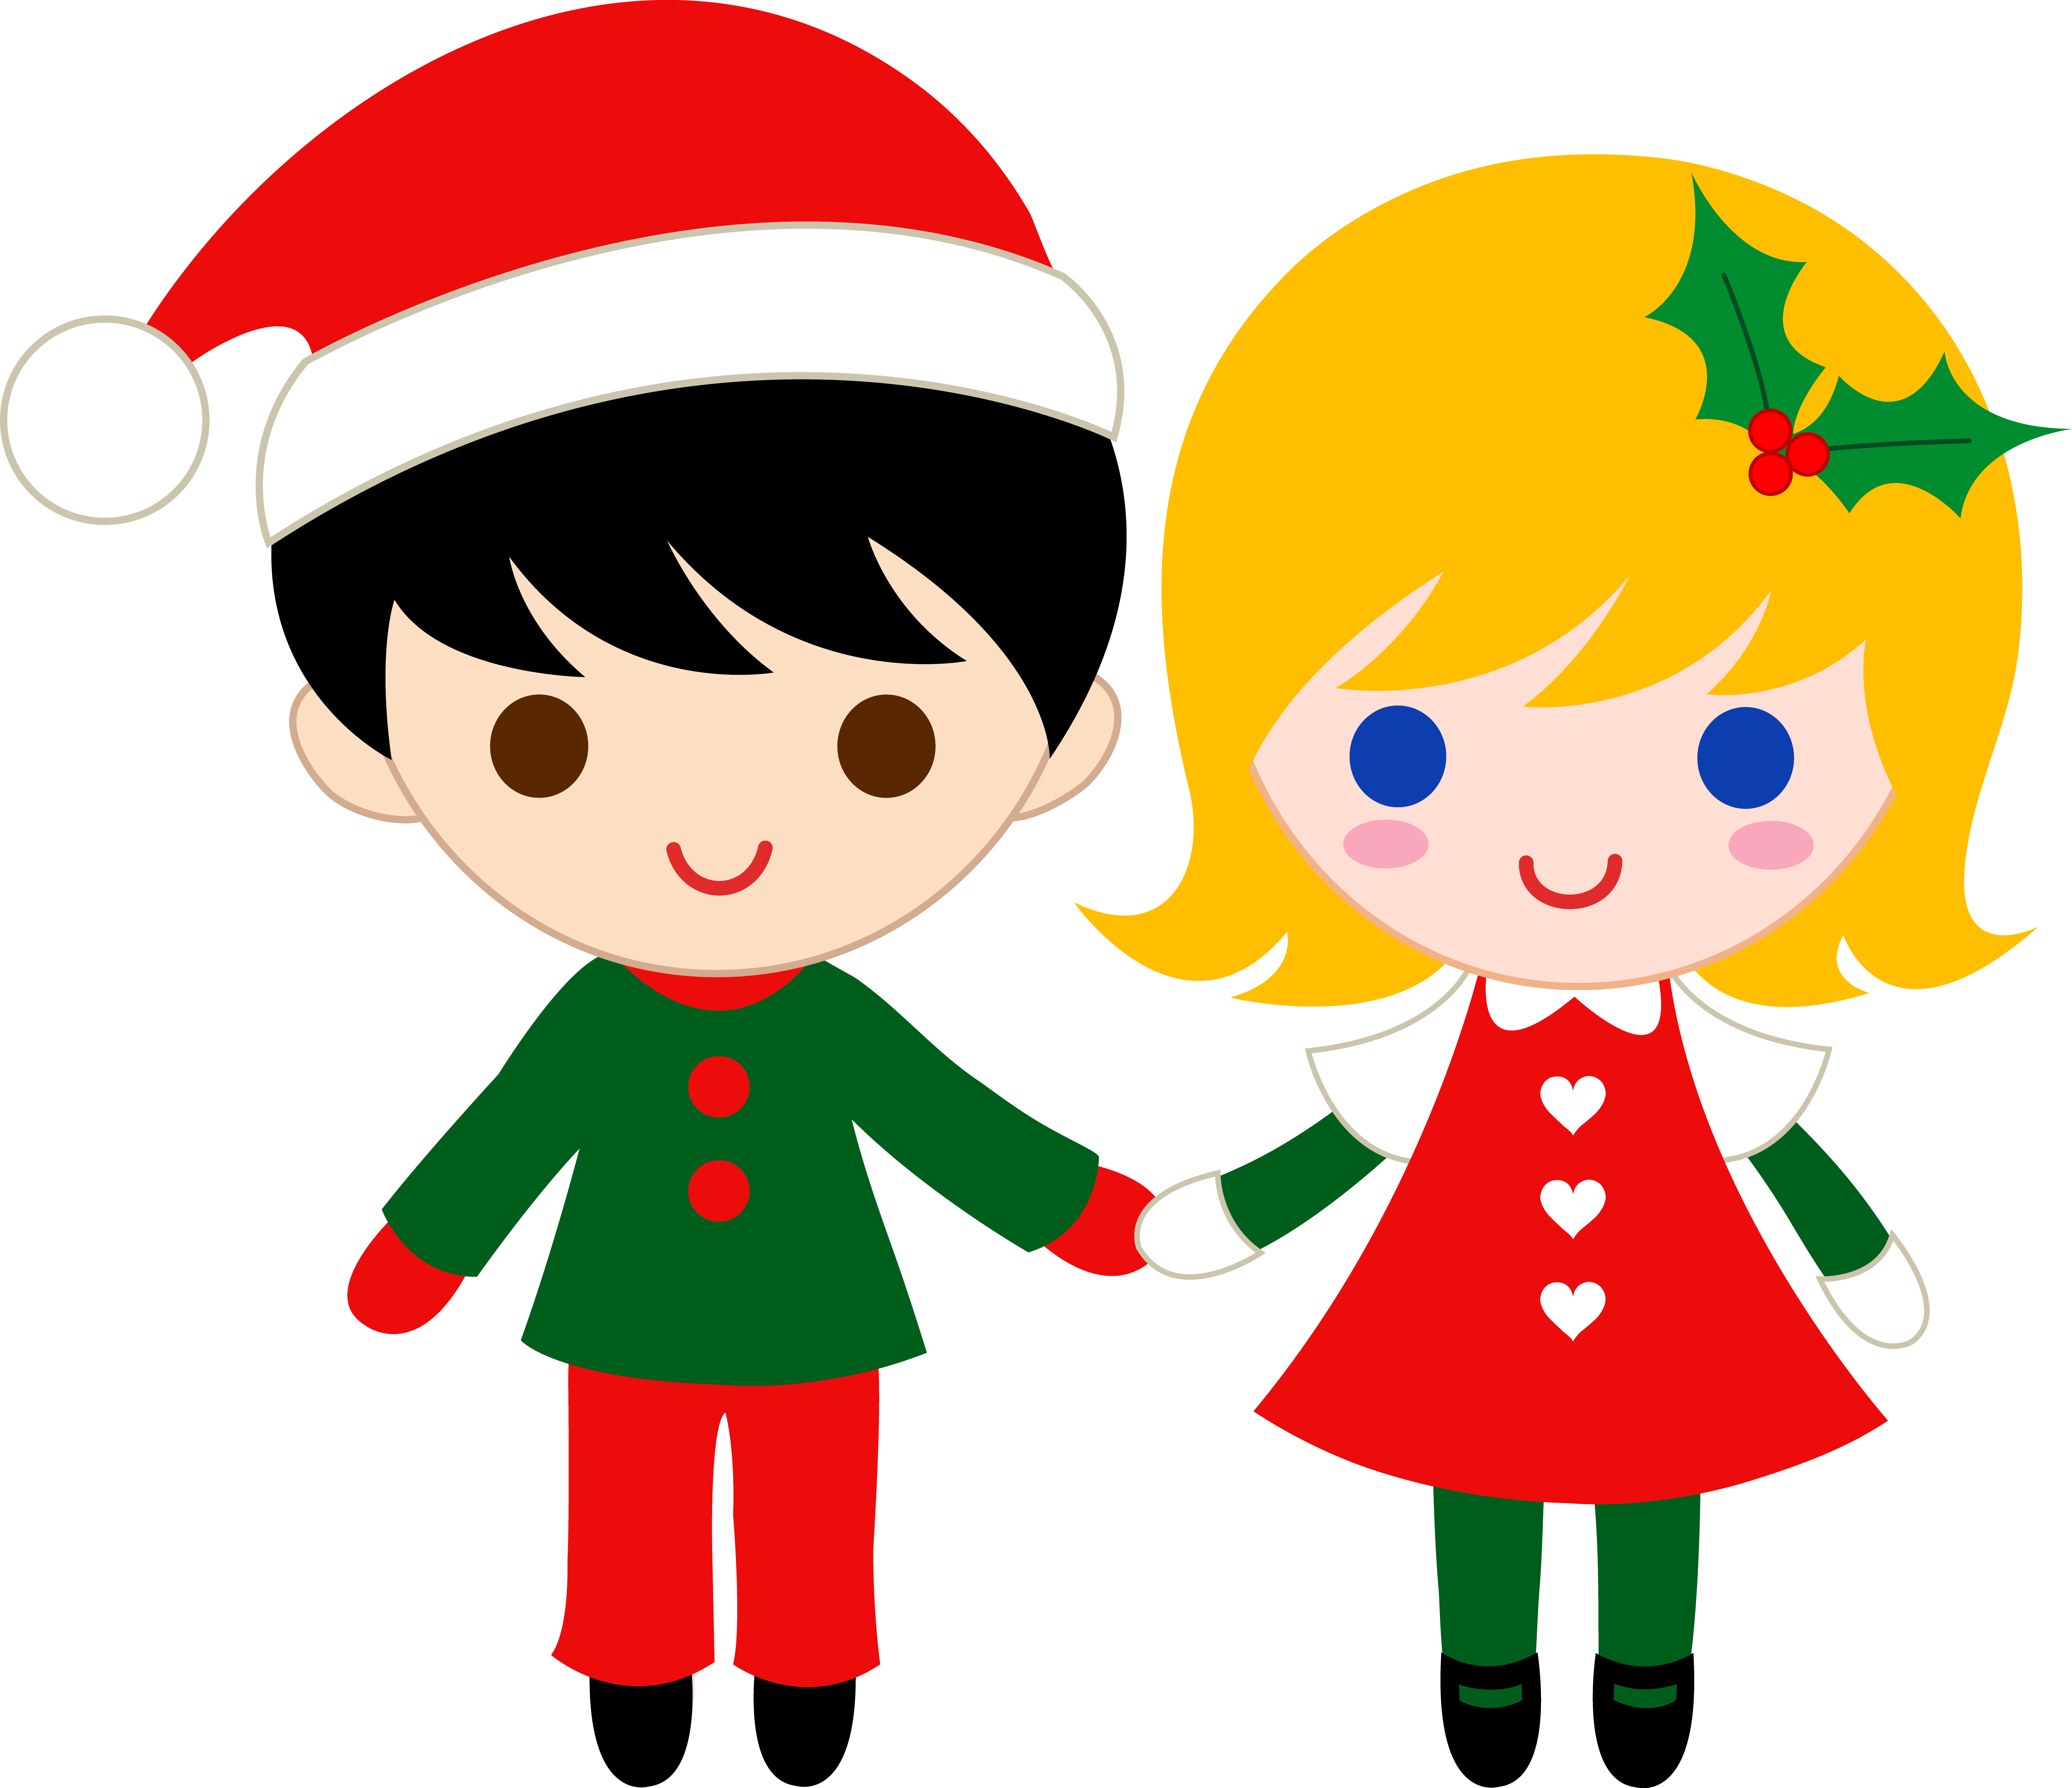 Little Boy clipart cute Clip Art Hands Christmas Holding